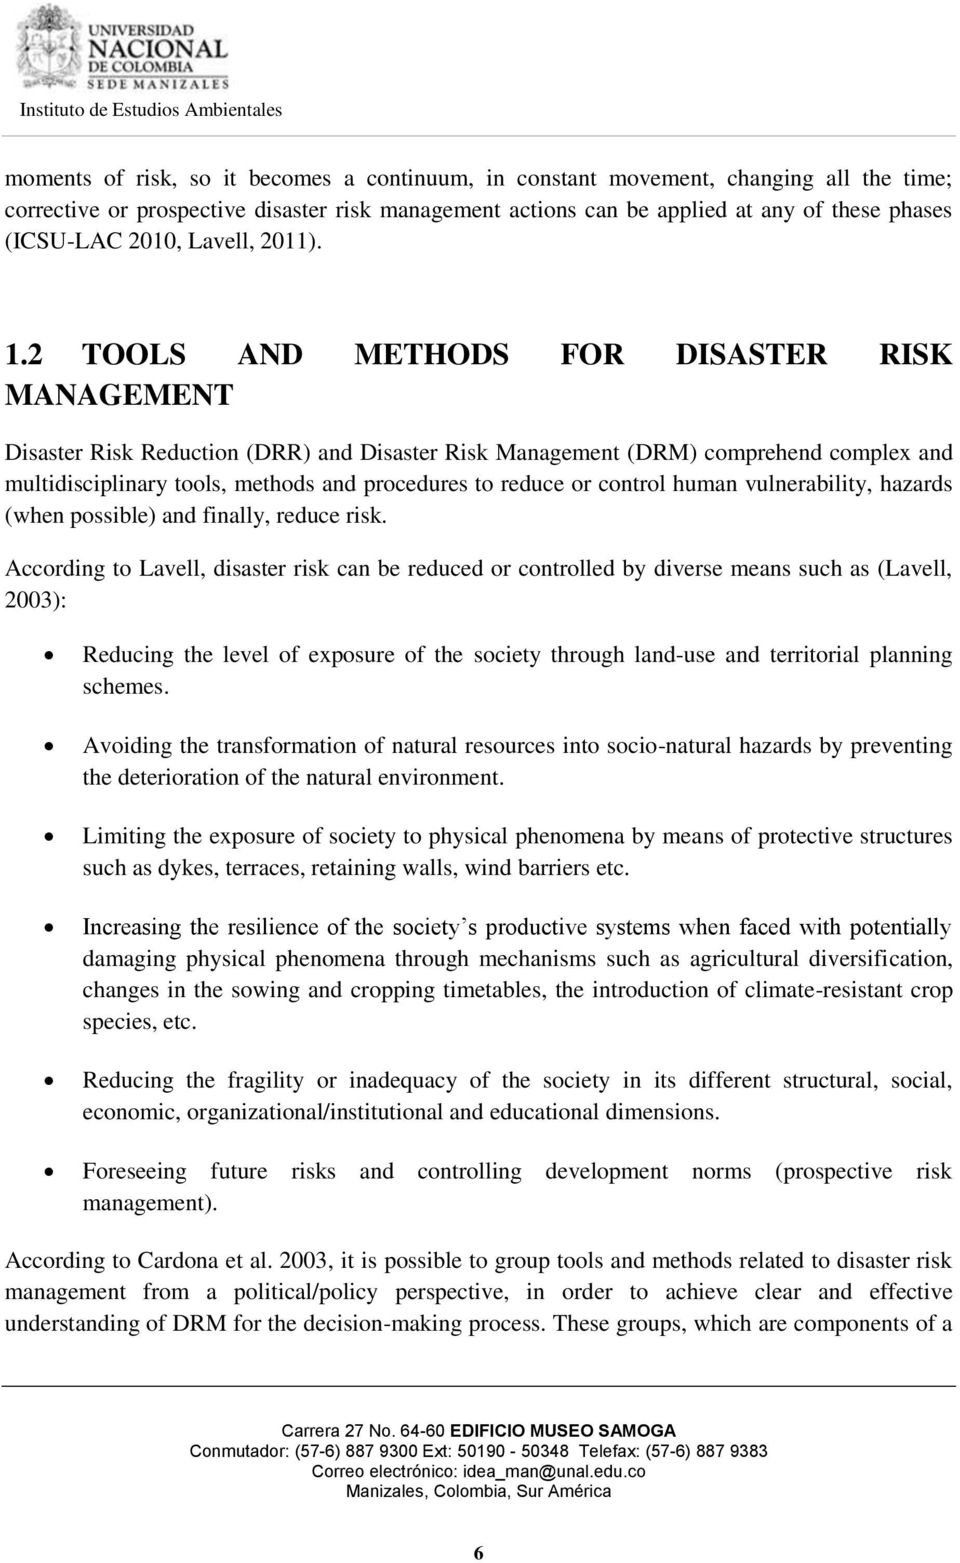 2 TOOLS AND METHODS FOR DISASTER RISK MANAGEMENT Disaster Risk Reduction (DRR) and Disaster Risk Management (DRM) comprehend complex and multidisciplinary tools, methods and procedures to reduce or